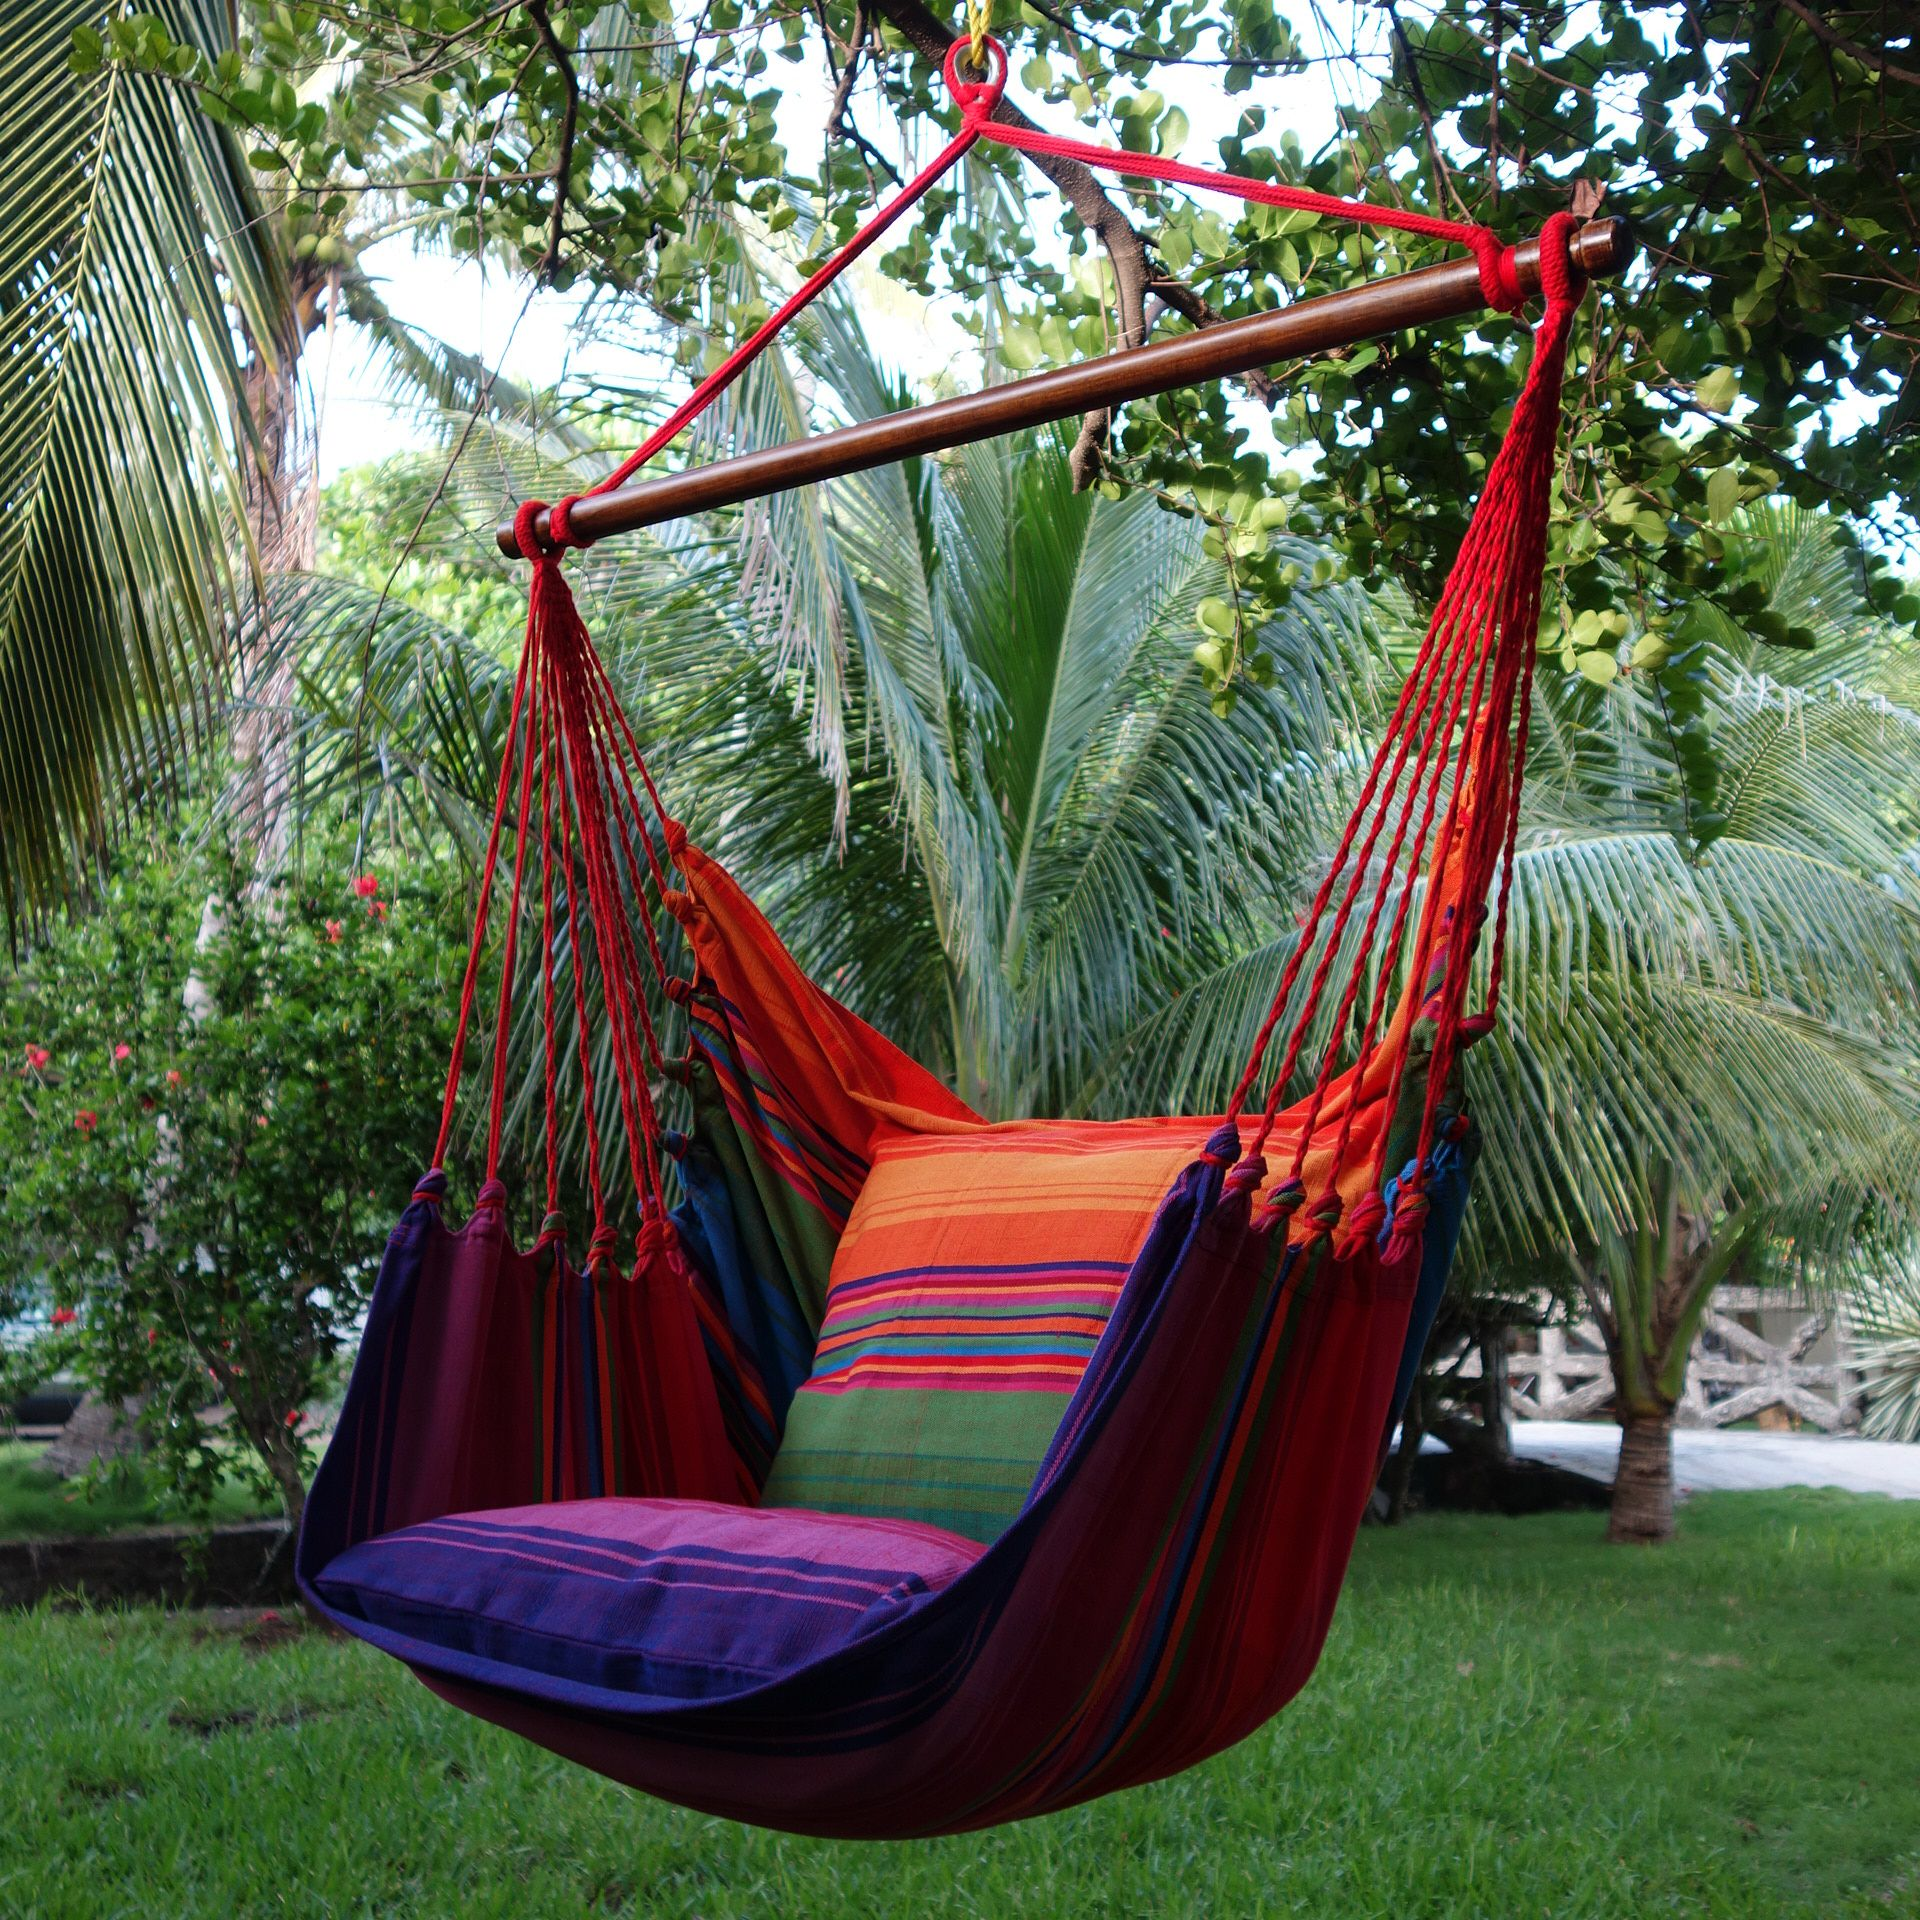 choosing a hammock chair for your backyard   http   www ideas4homes  choosing a hammock chair for your backyard   http   www      rh   pinterest